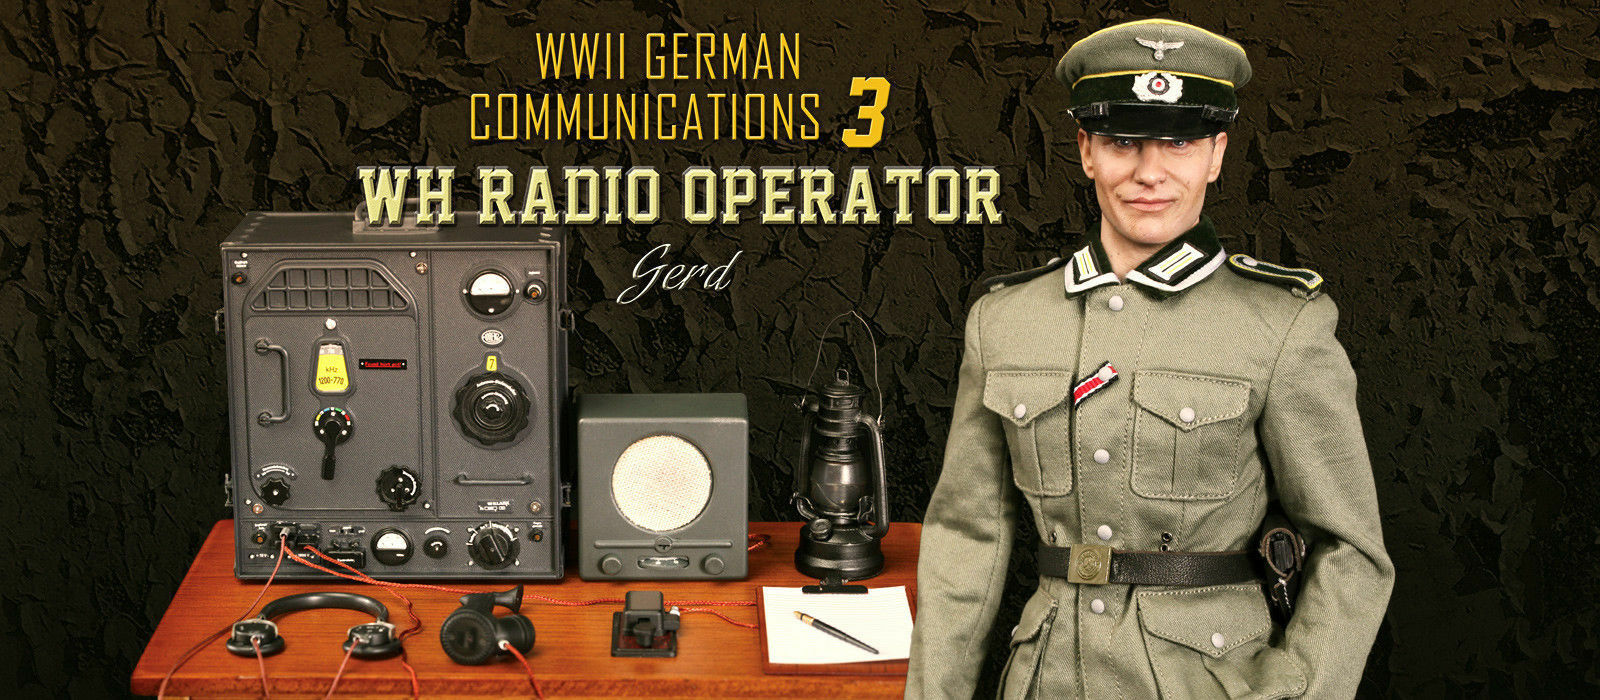 DID1 6 Figure D80133 WWII German Communication 3 WH WH WH Radio Operator Gerd 29c0e4